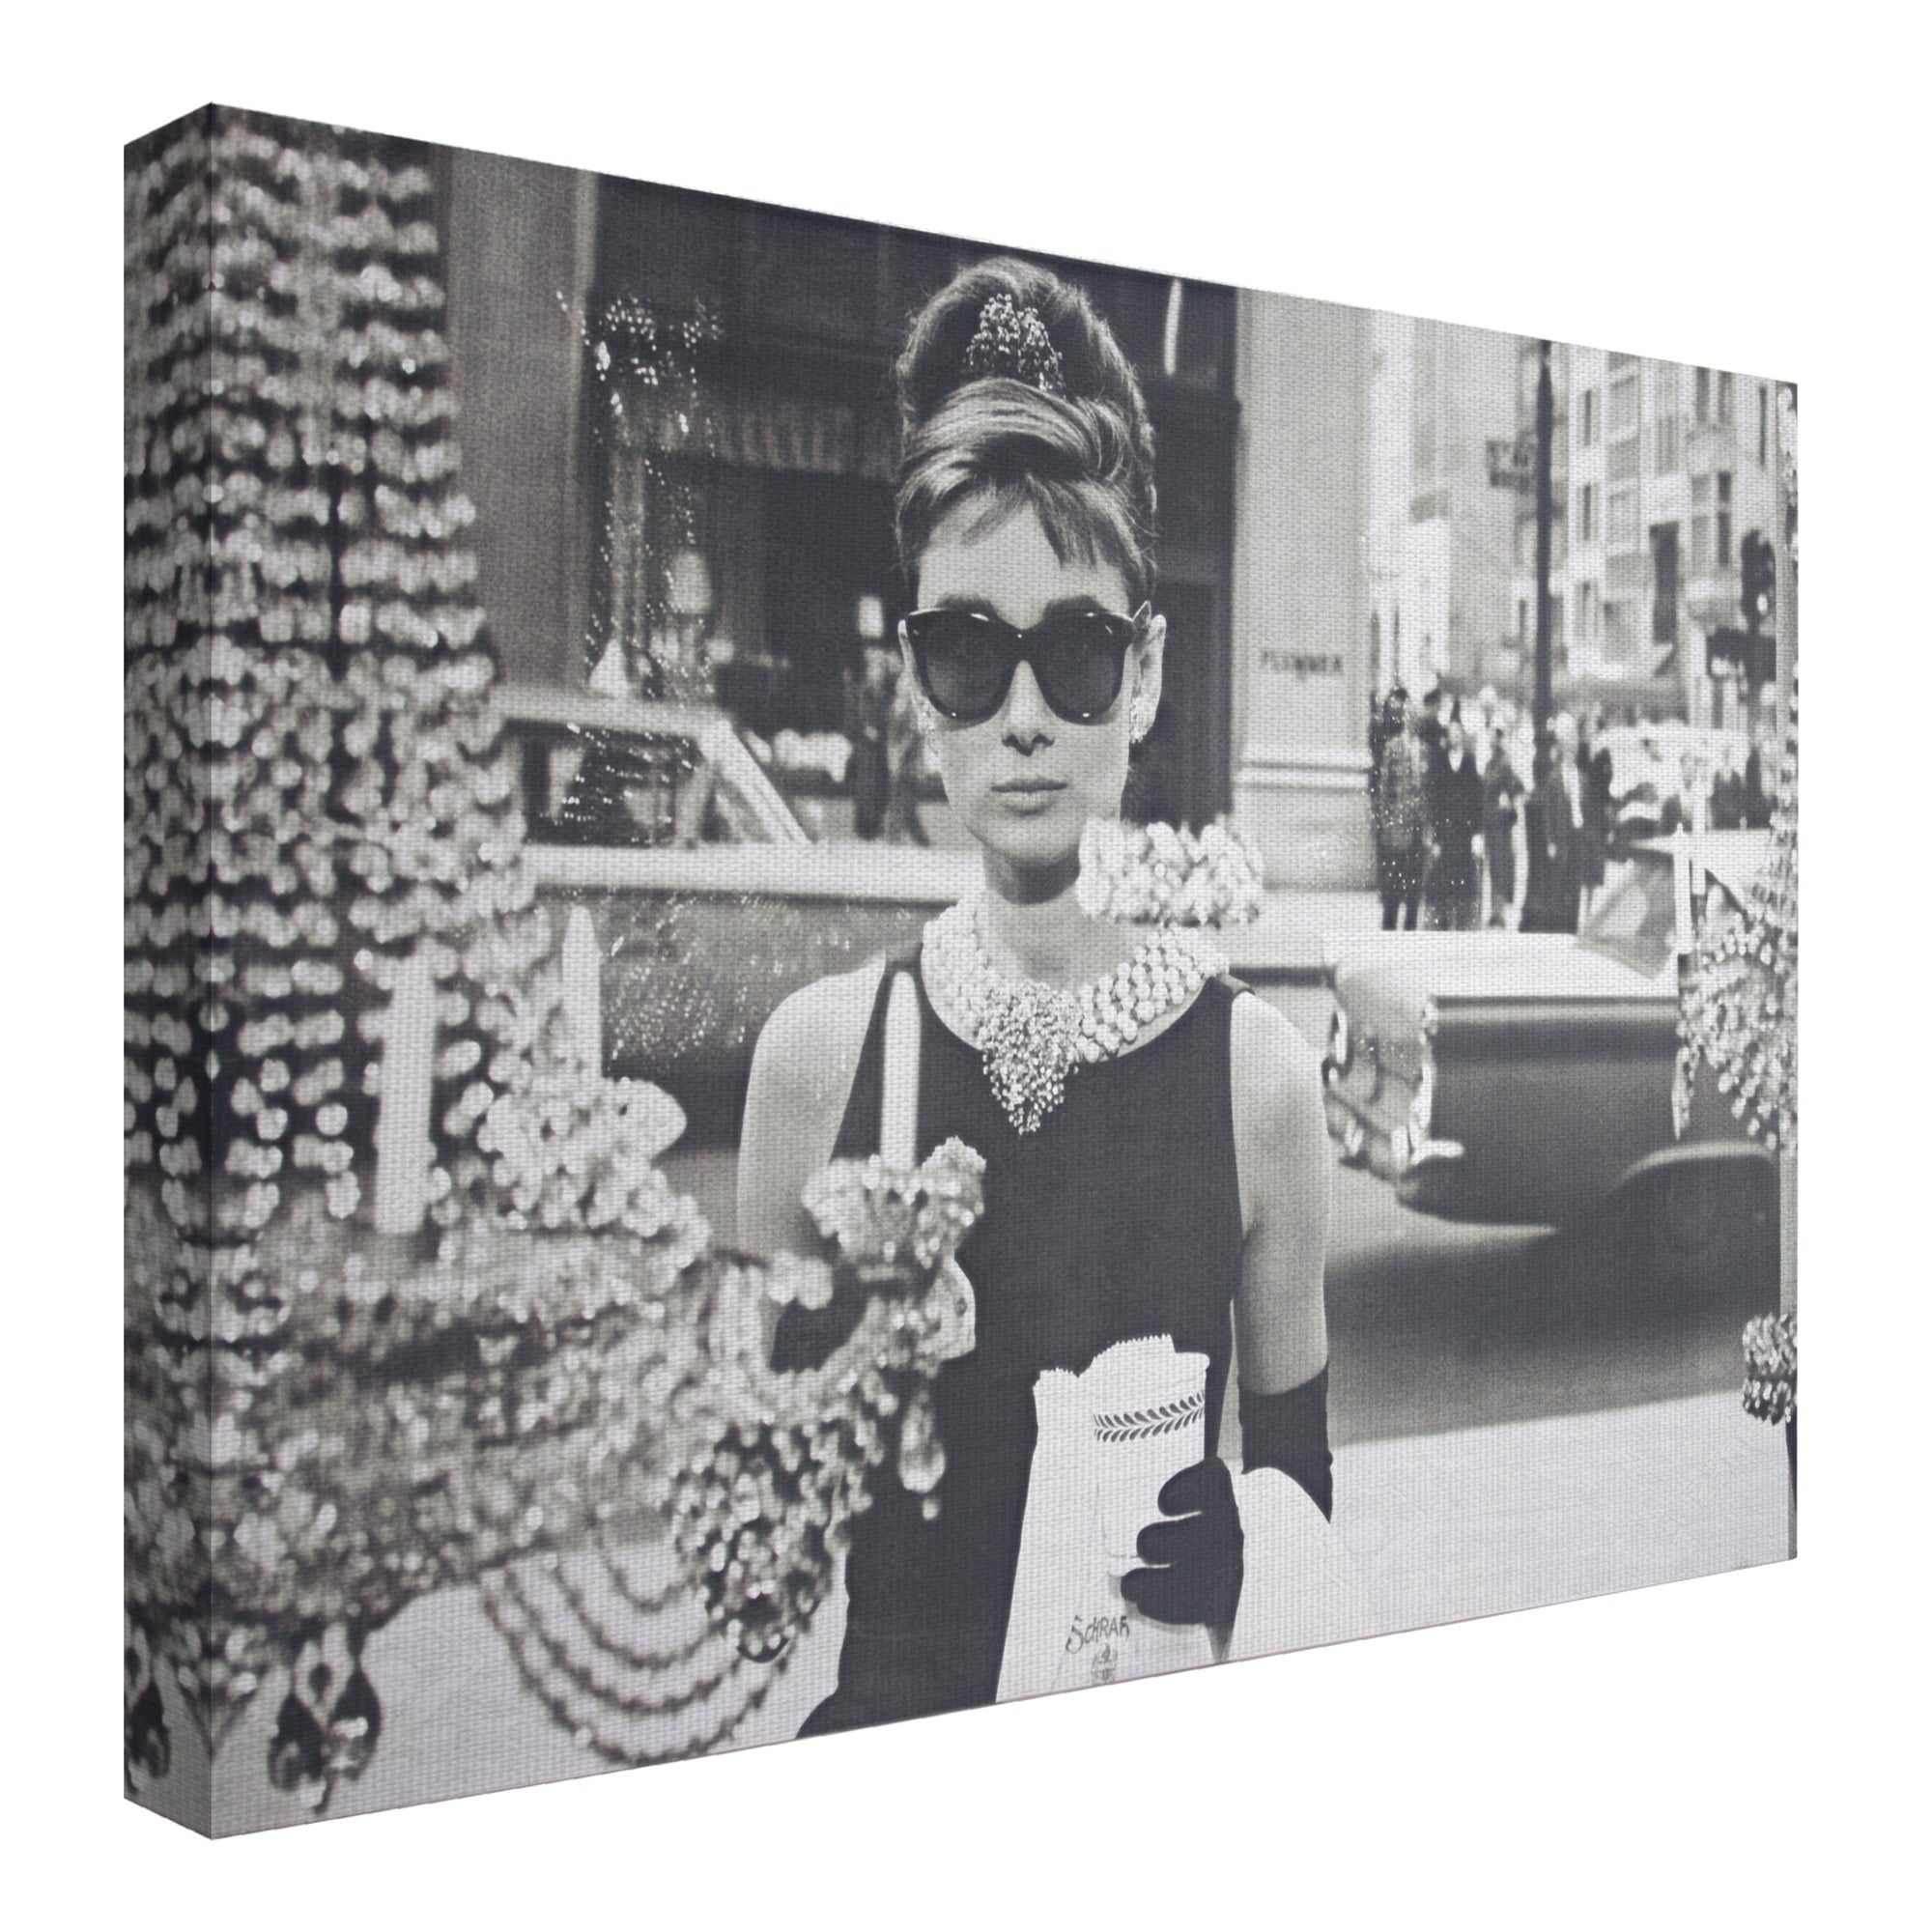 15ae3391f10fe Shop American Art Decor Audrey Hepburn Breakfast at Tiffany s Canvas Art -  Black - Free Shipping On Orders Over  45 - Overstock - 26234422